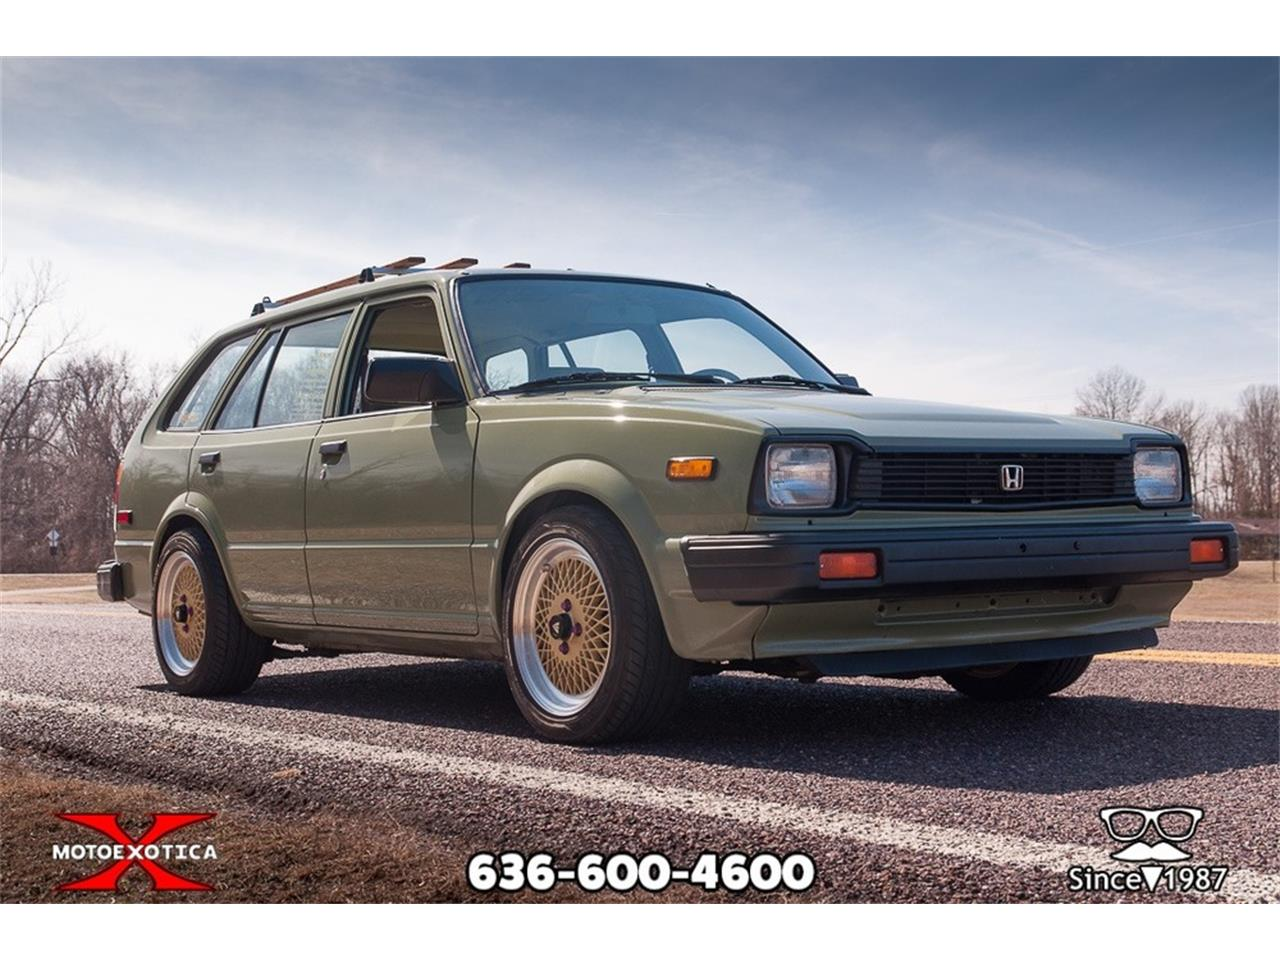 1983 Honda Civic Wagon for sale in St. Louis, MO – photo 9